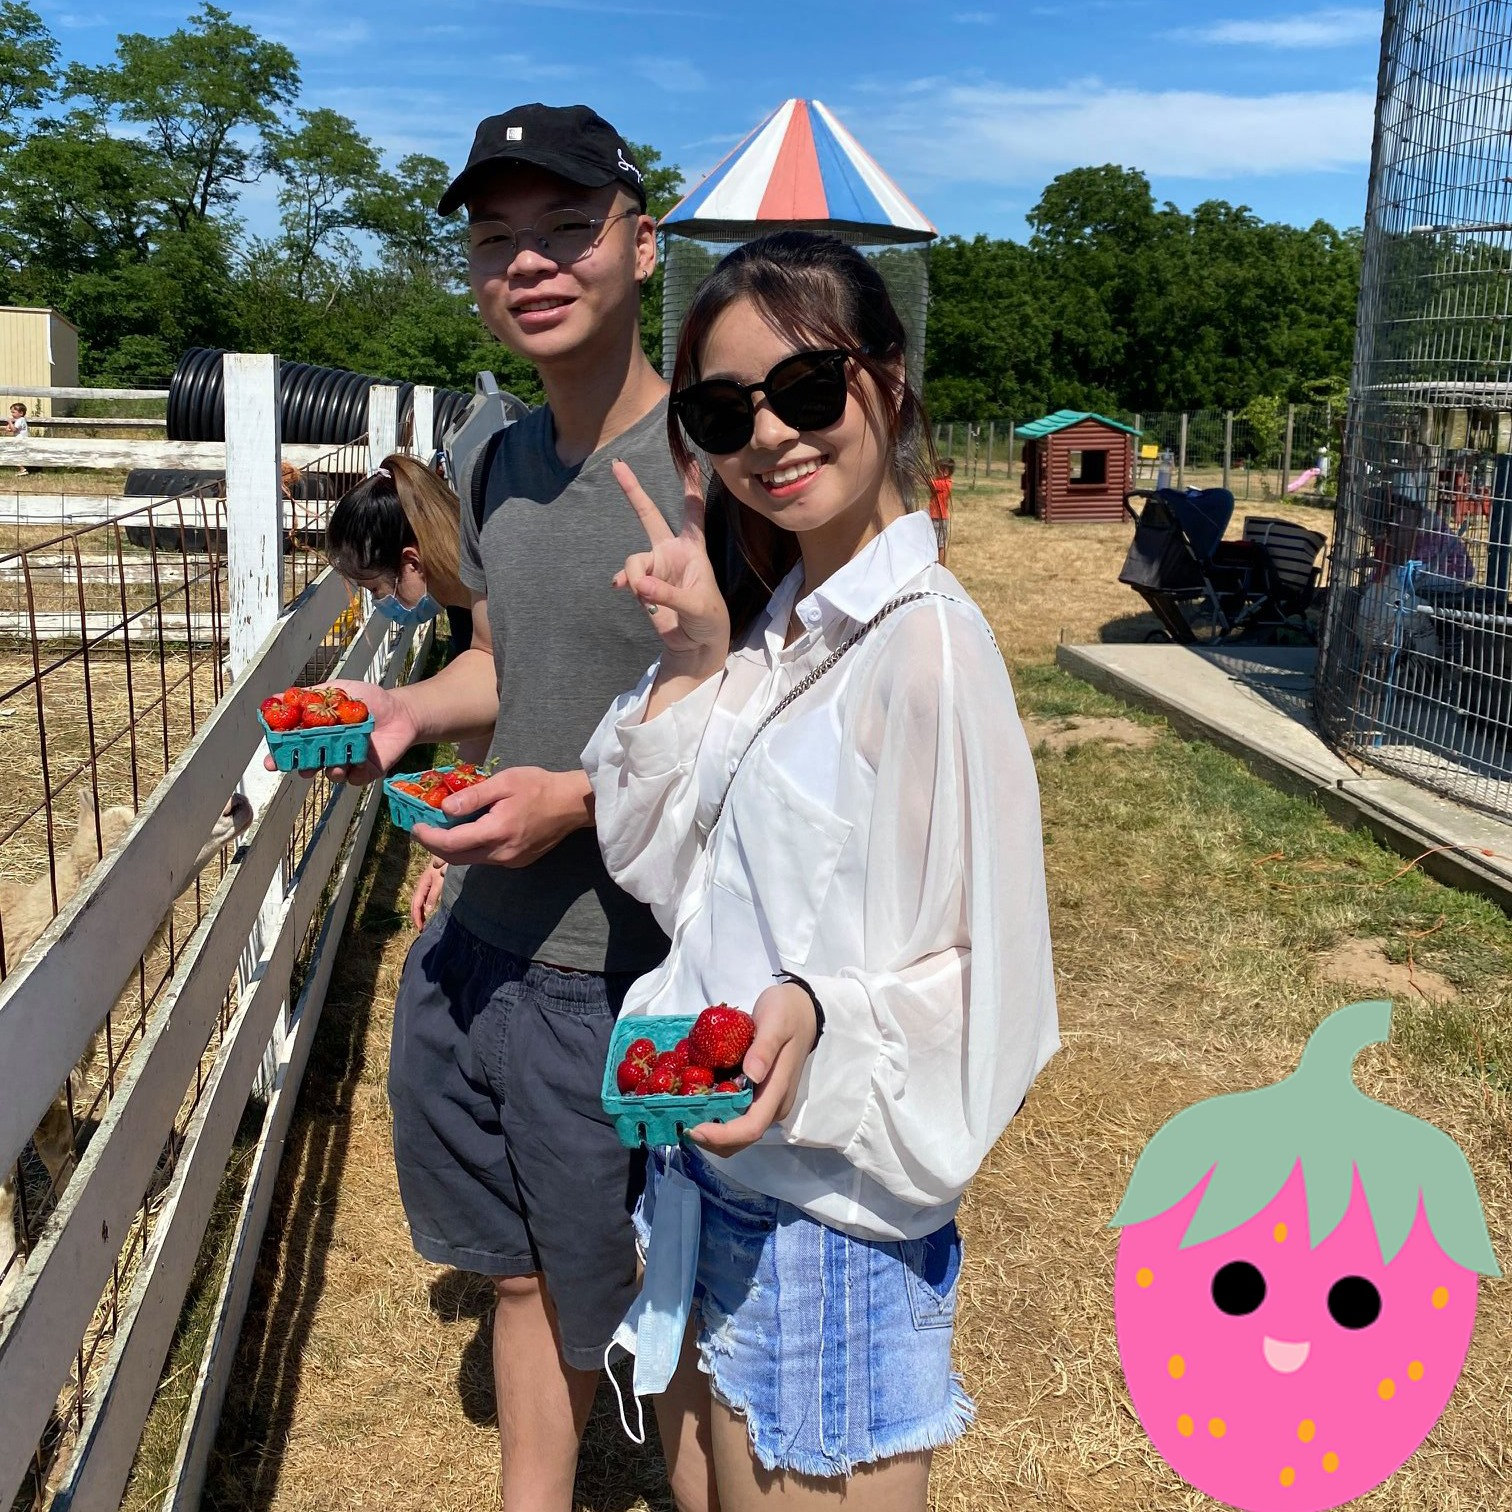 STRAWBERRY FESTIVAL 2021 at Garden Of Eve